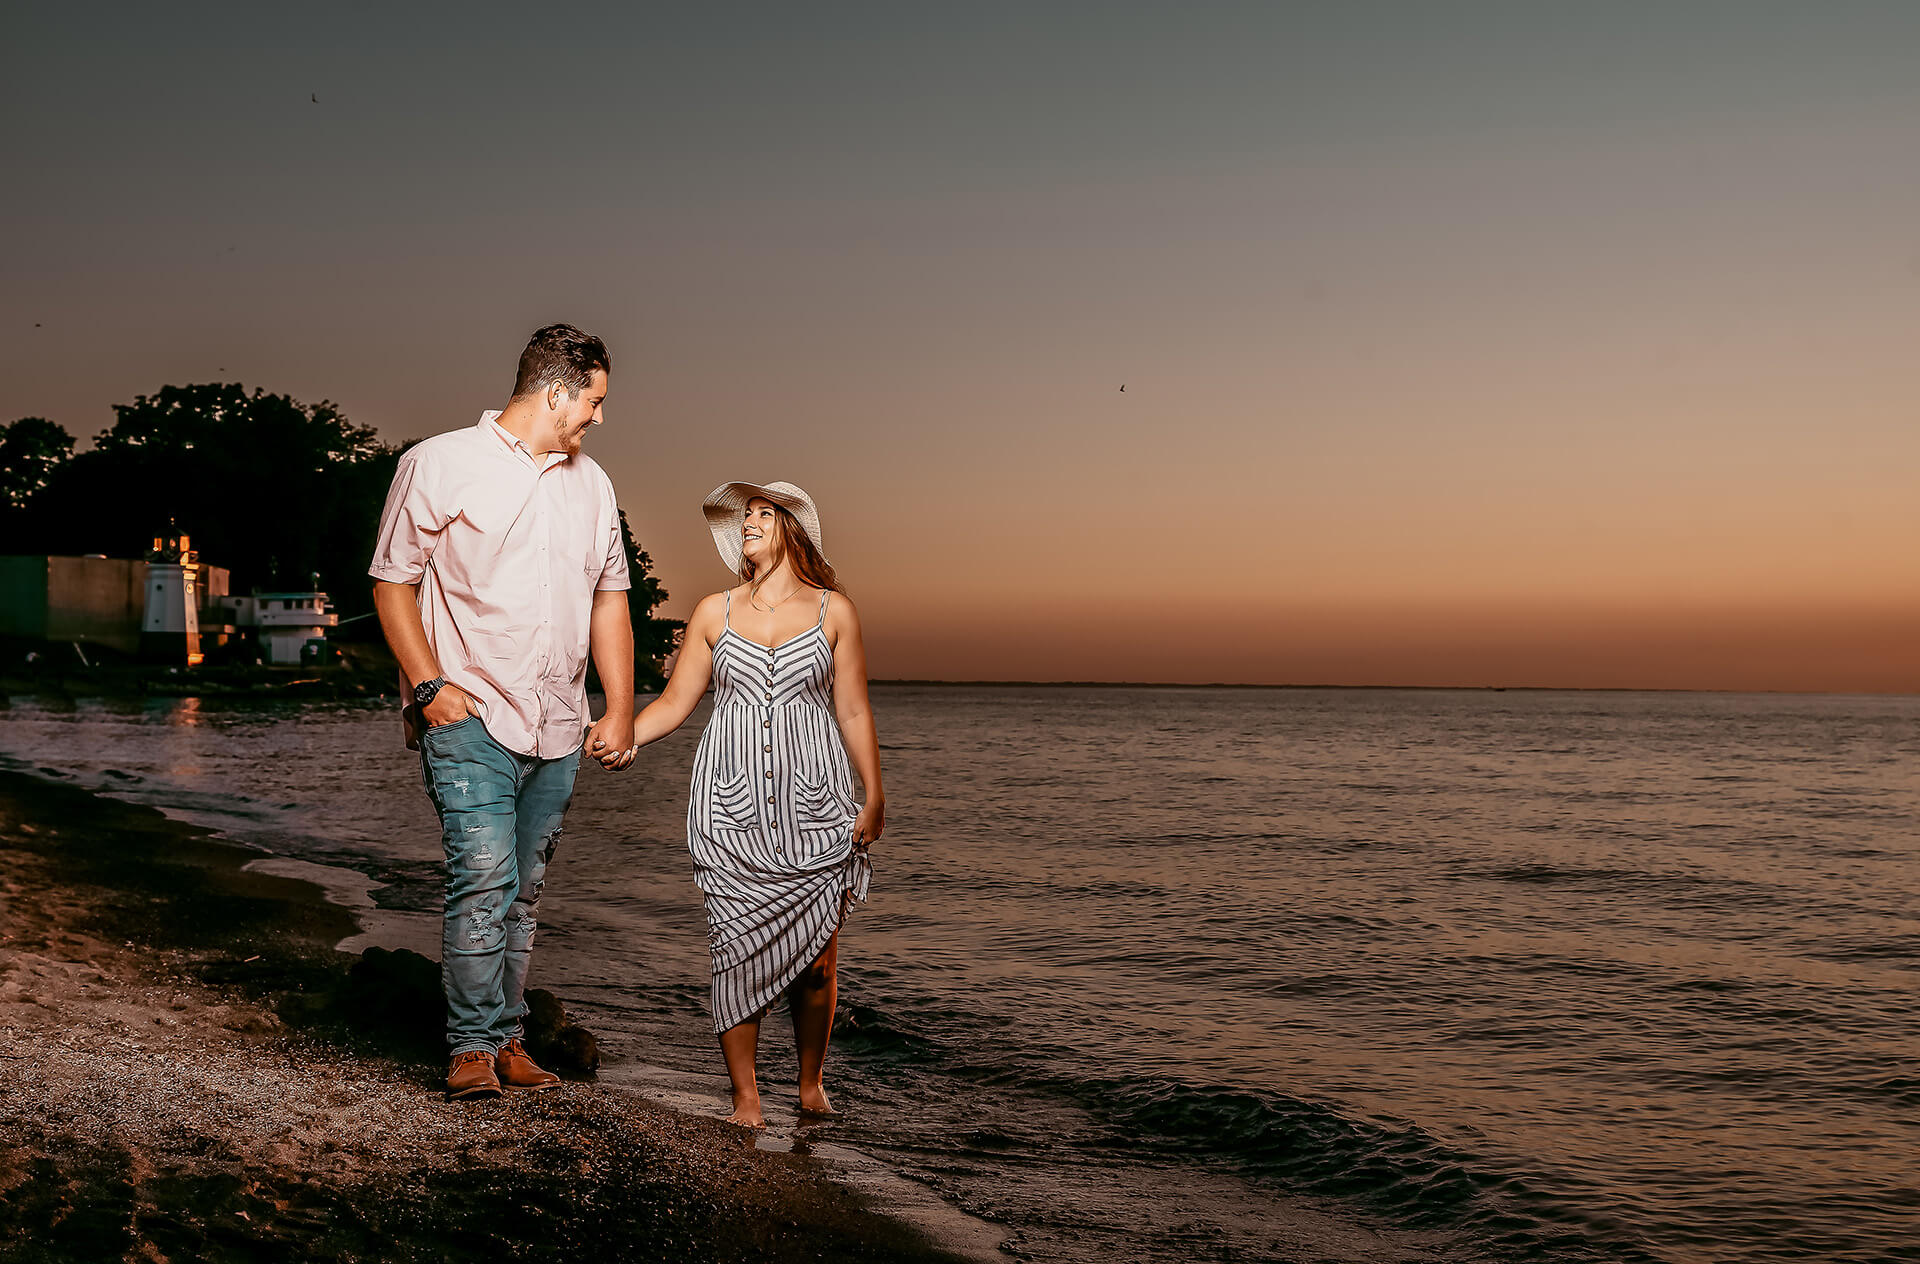 Engaged young couple walking along the beach in Vermilion on the Lake with the Vermilion Lighthouse in the background at sunset